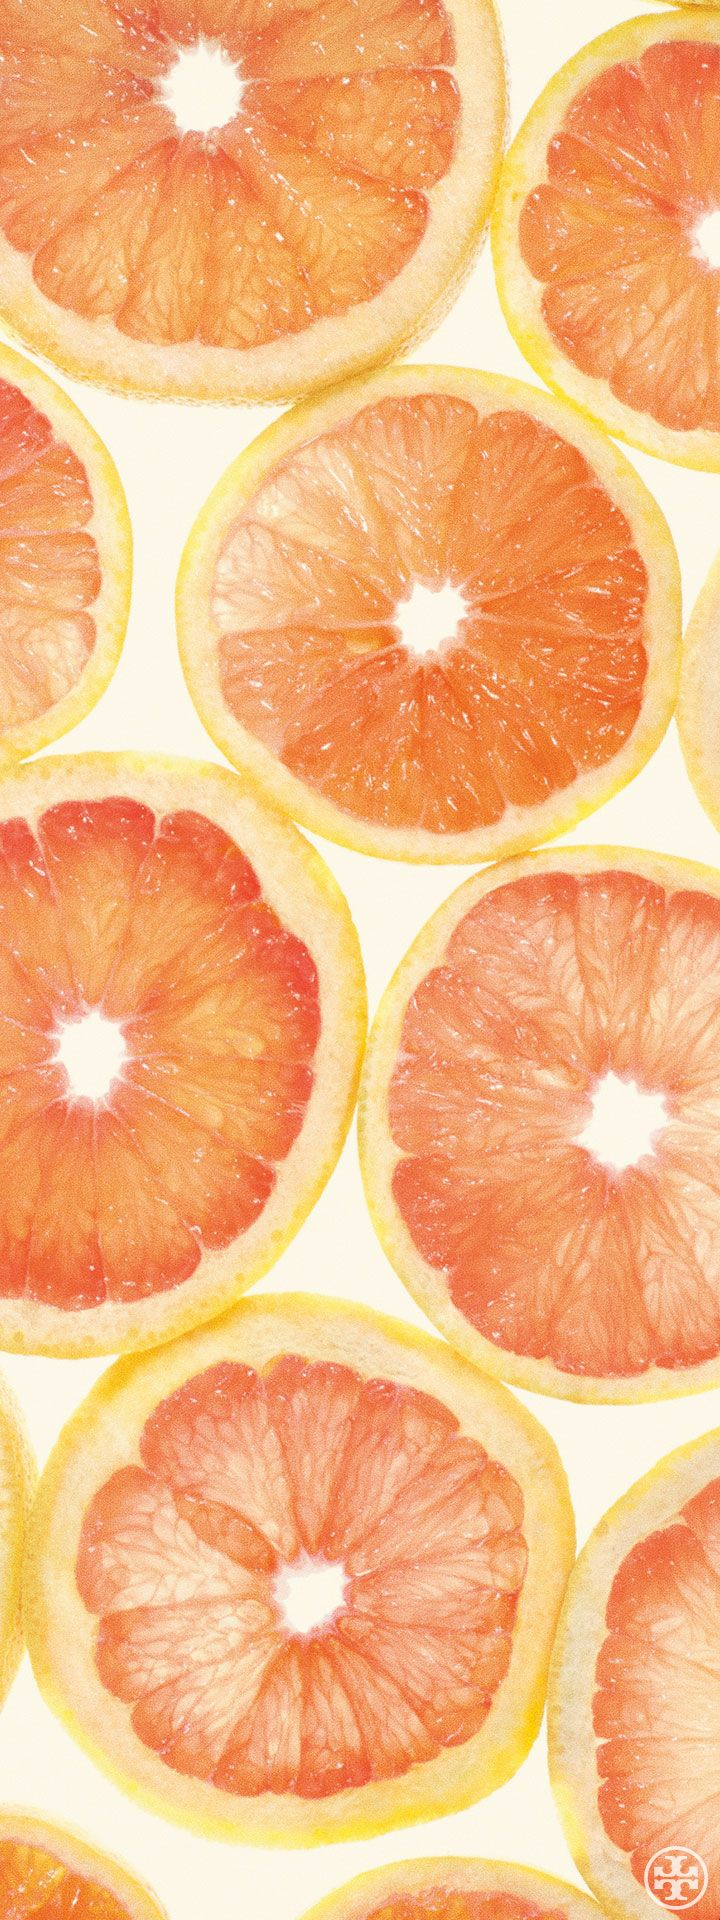 Crisp grapefruit, a citrus note from Tory's first fragrance